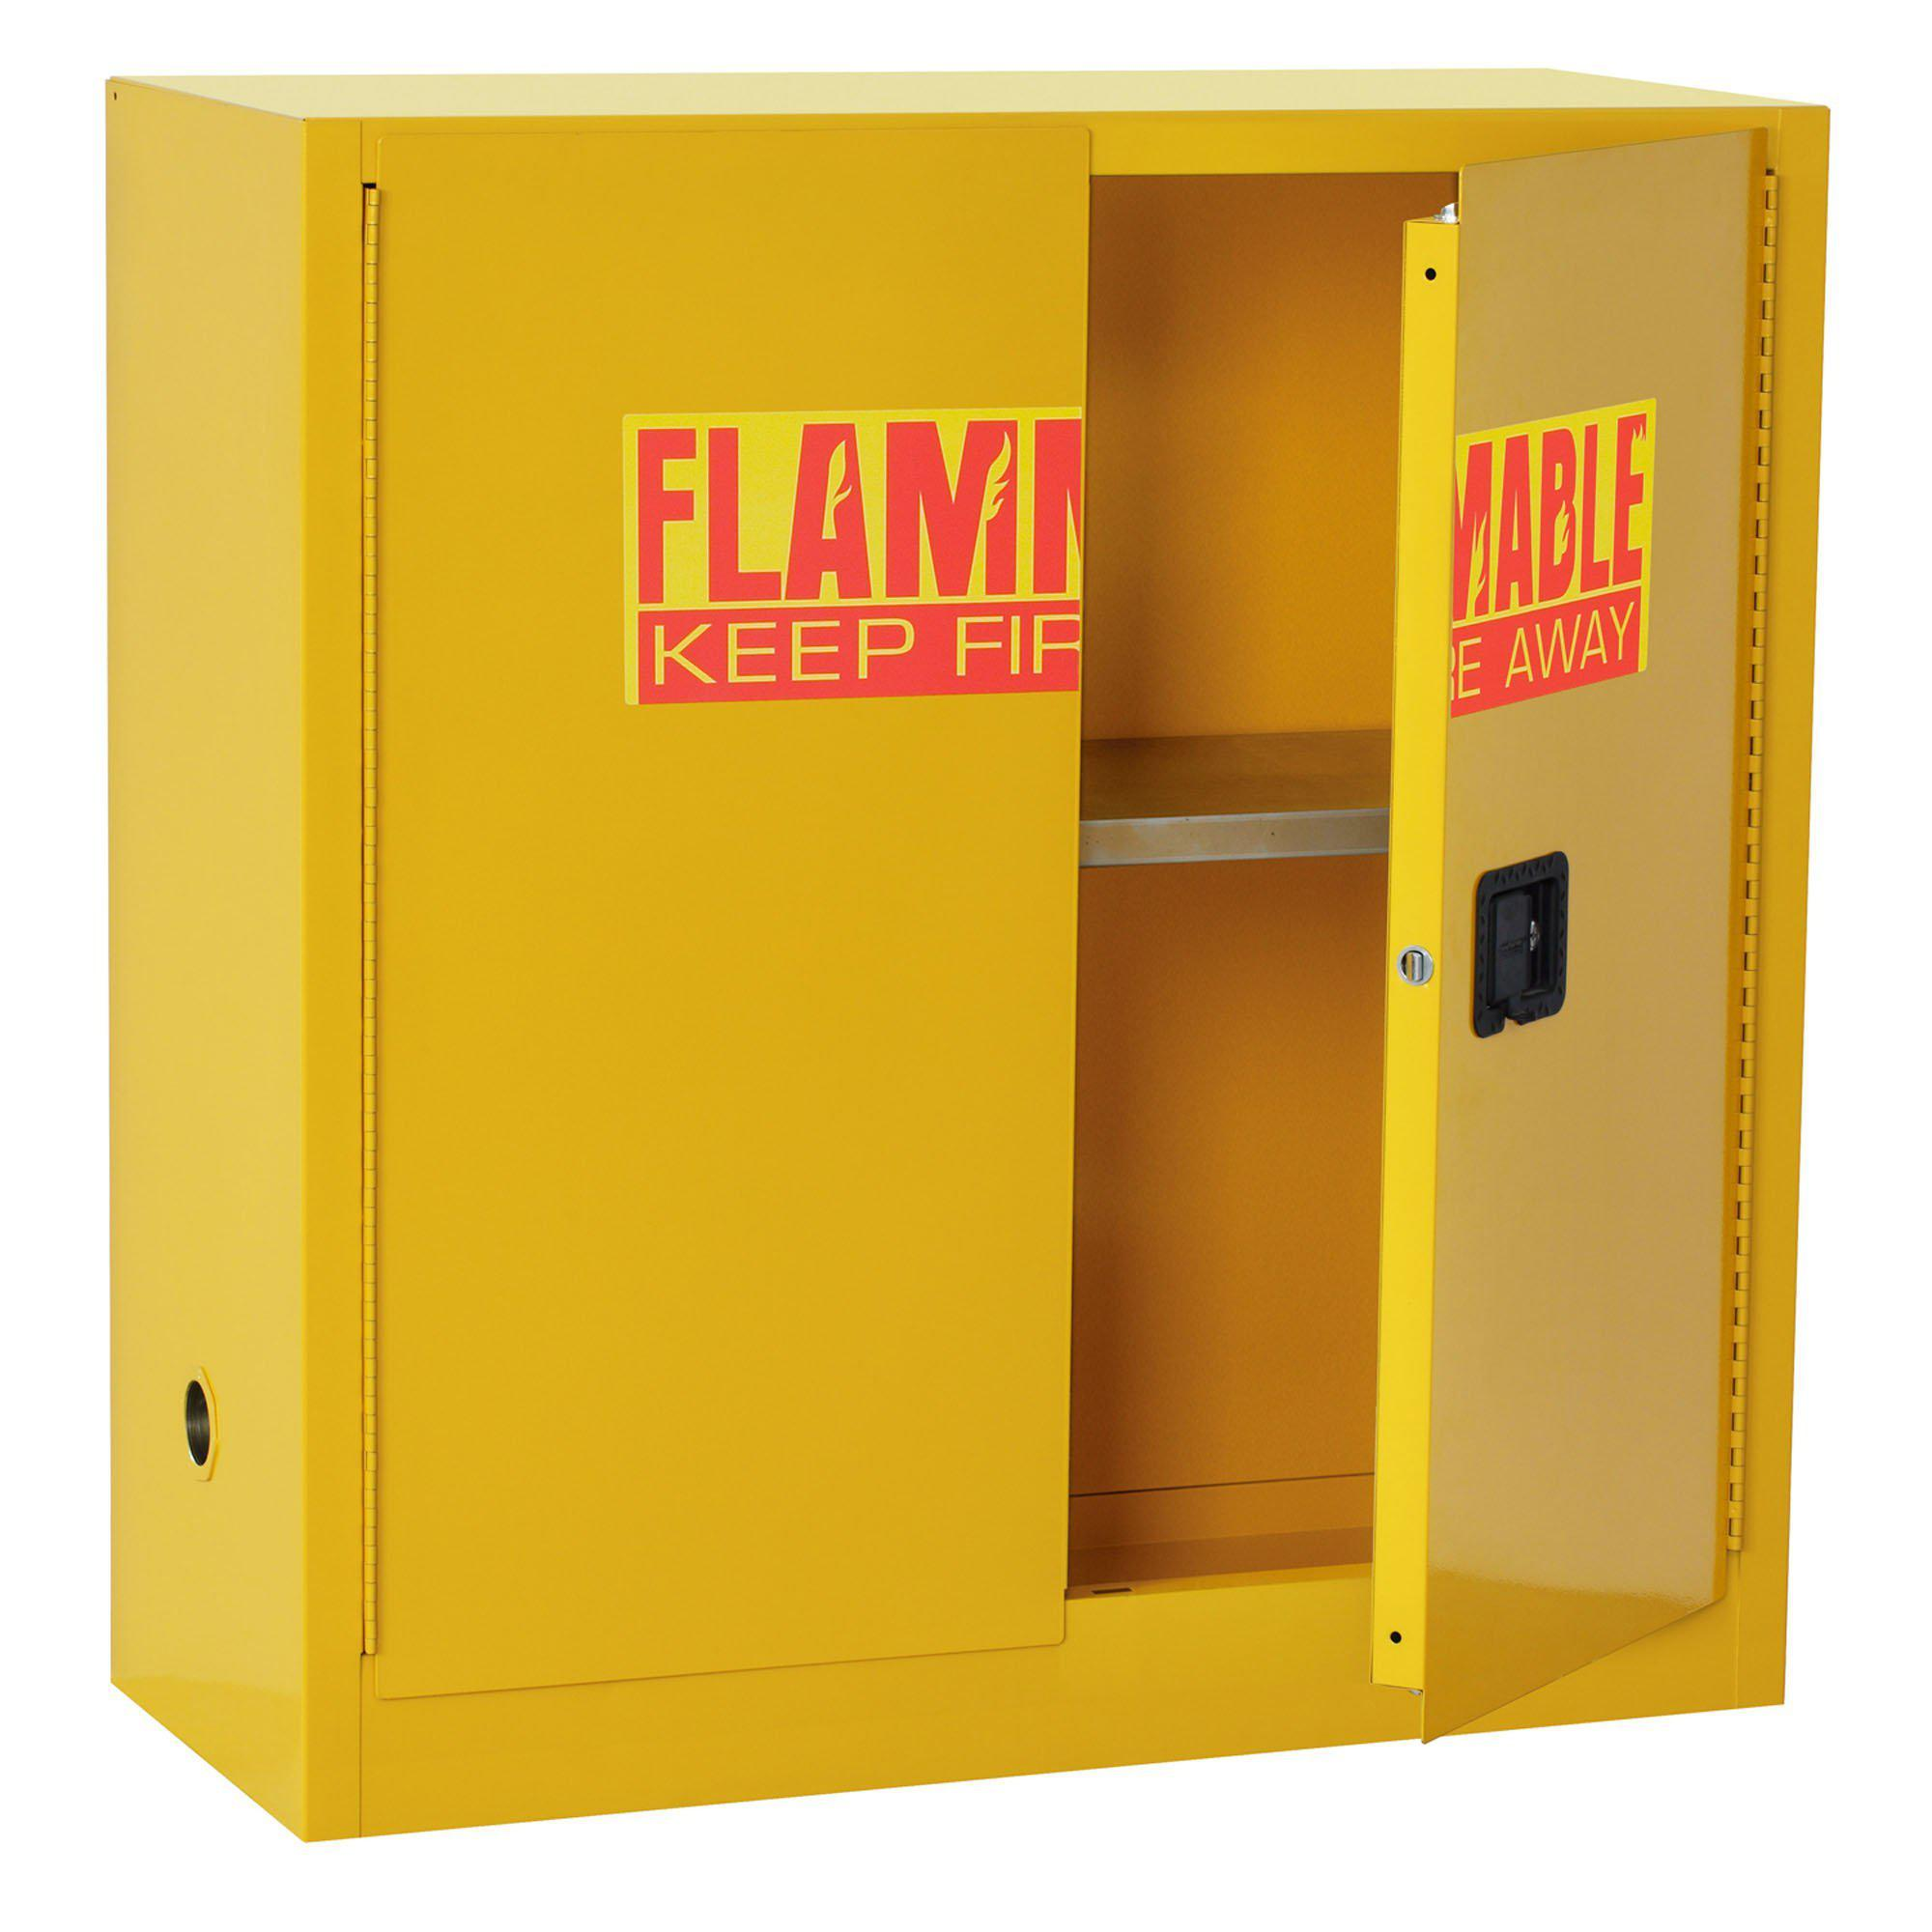 Counter Height Flammable Safety Cabinet, 30 Gallon Capacity, Safety Yellow, 43 x 18 x 44